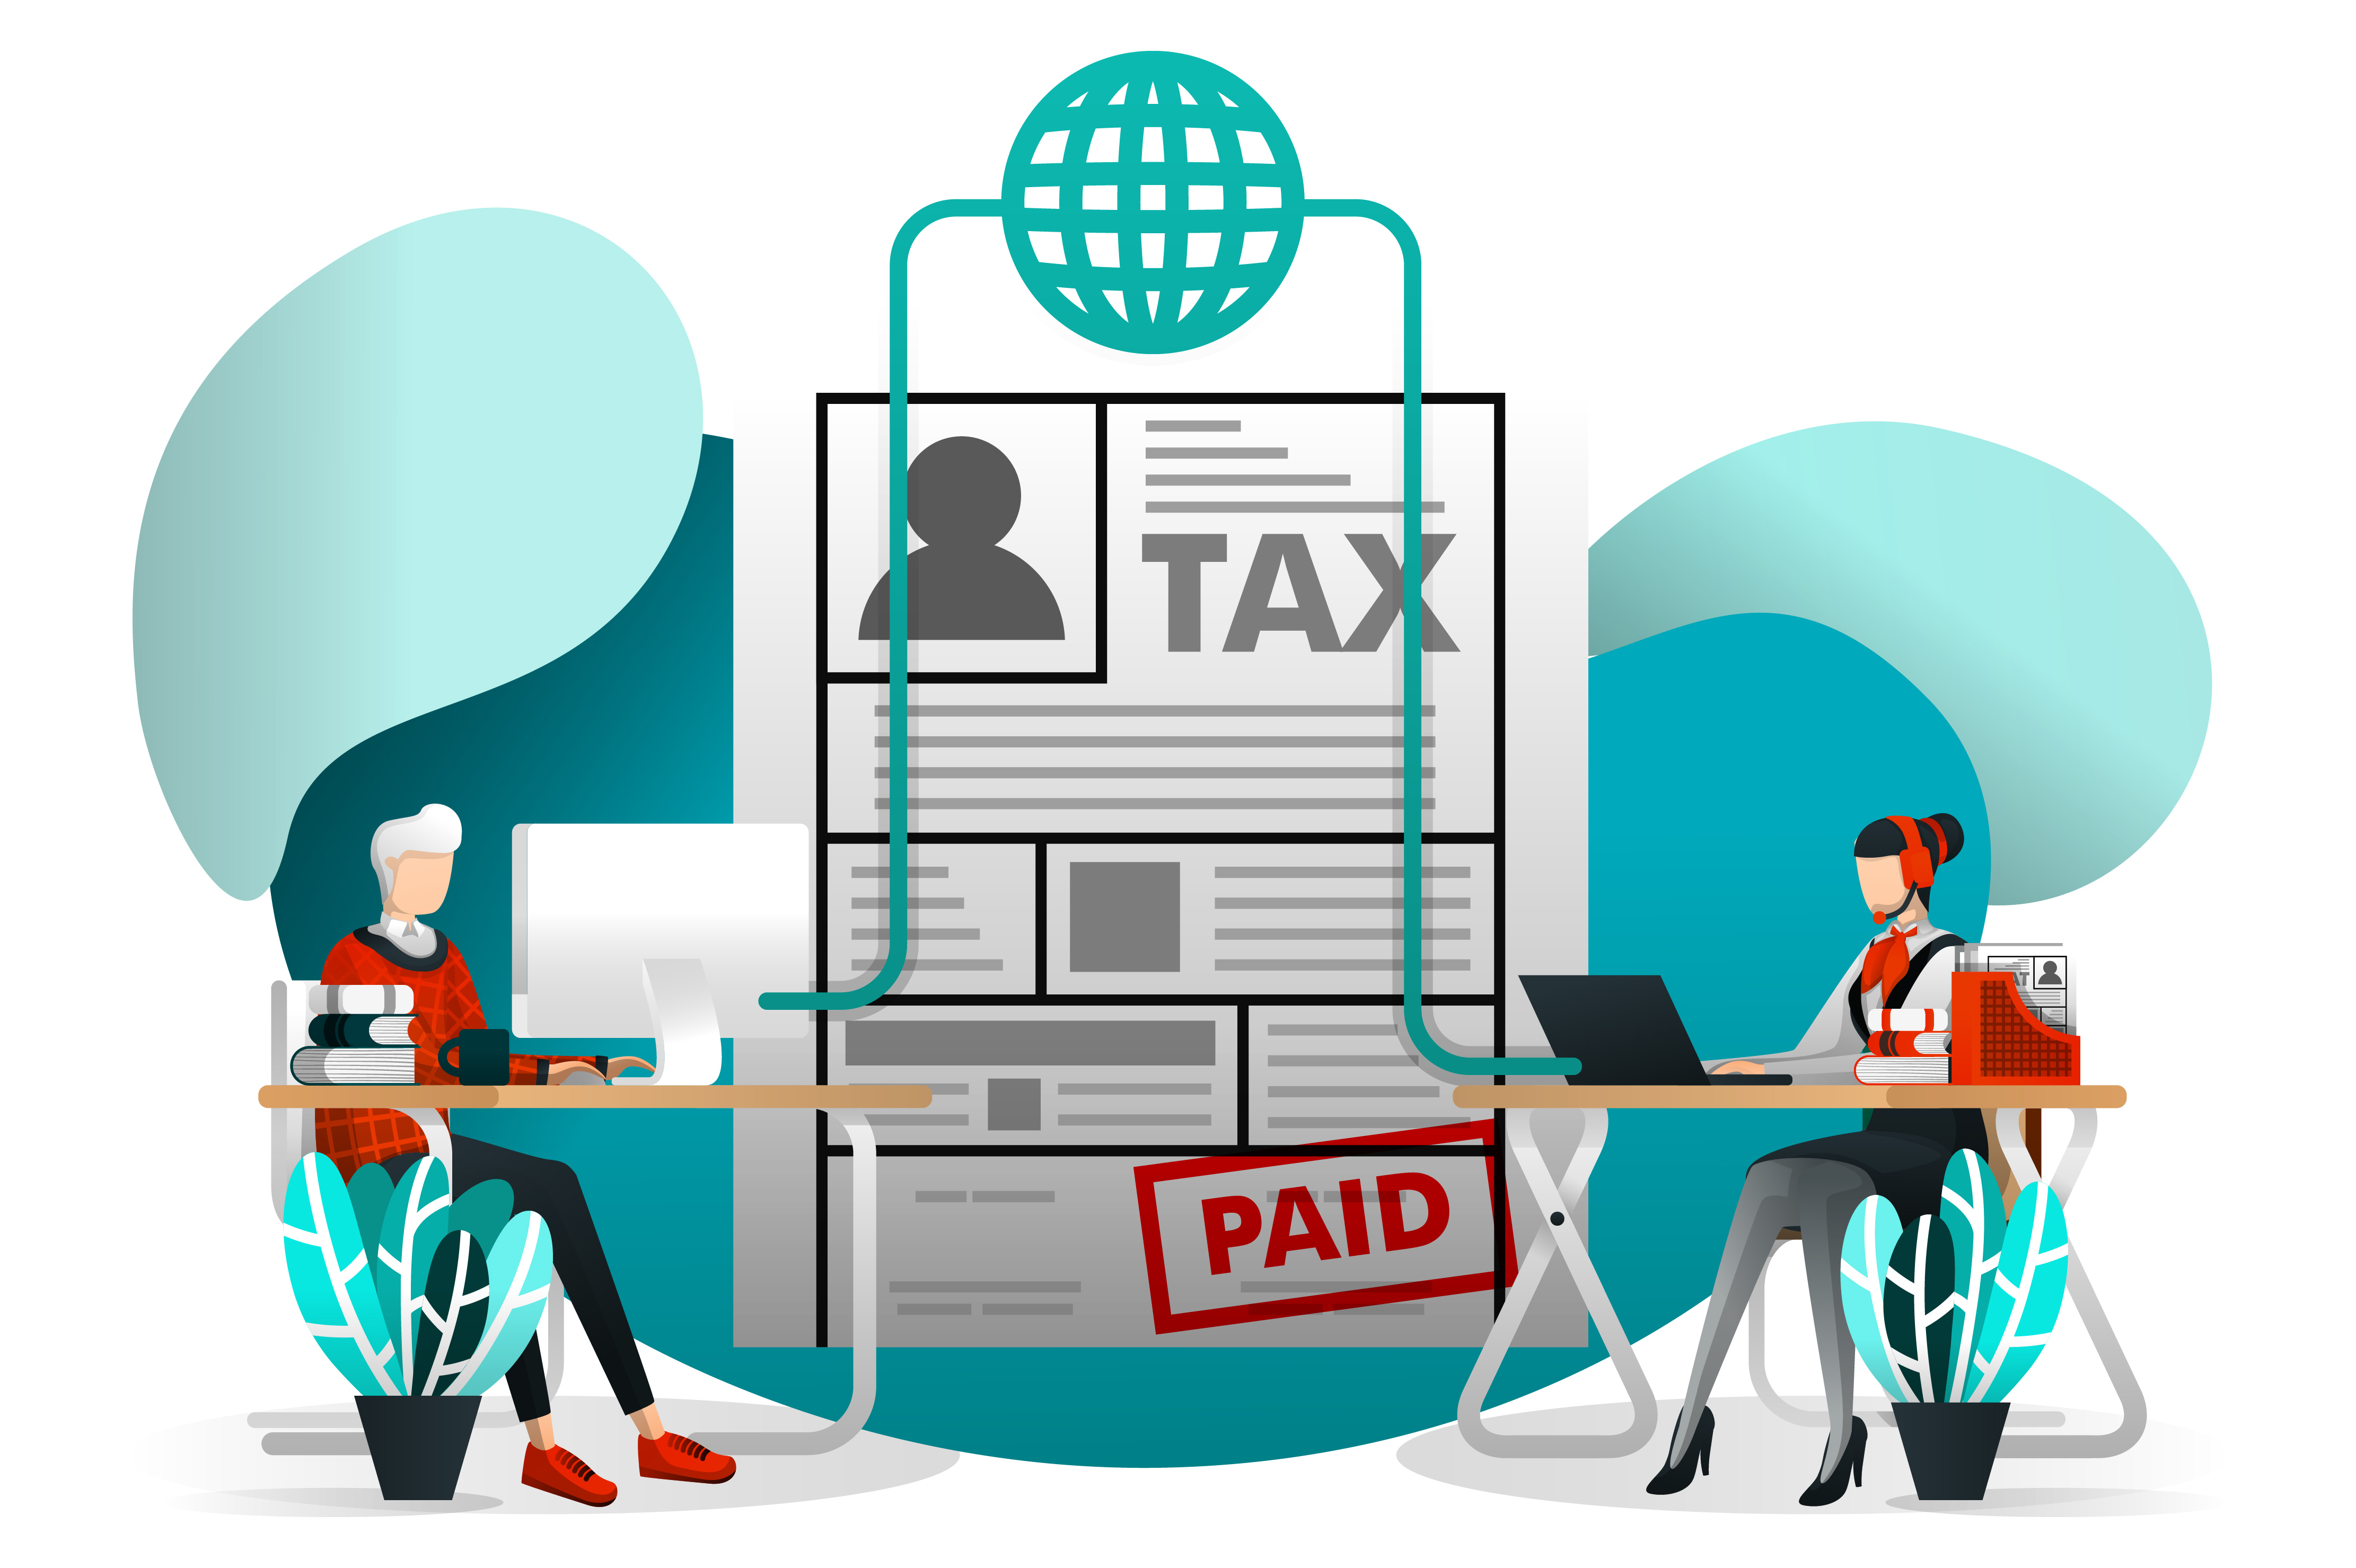 Download Free Illustration Of Online Tax Payment Graphic By Setiawanarief111 for Cricut Explore, Silhouette and other cutting machines.